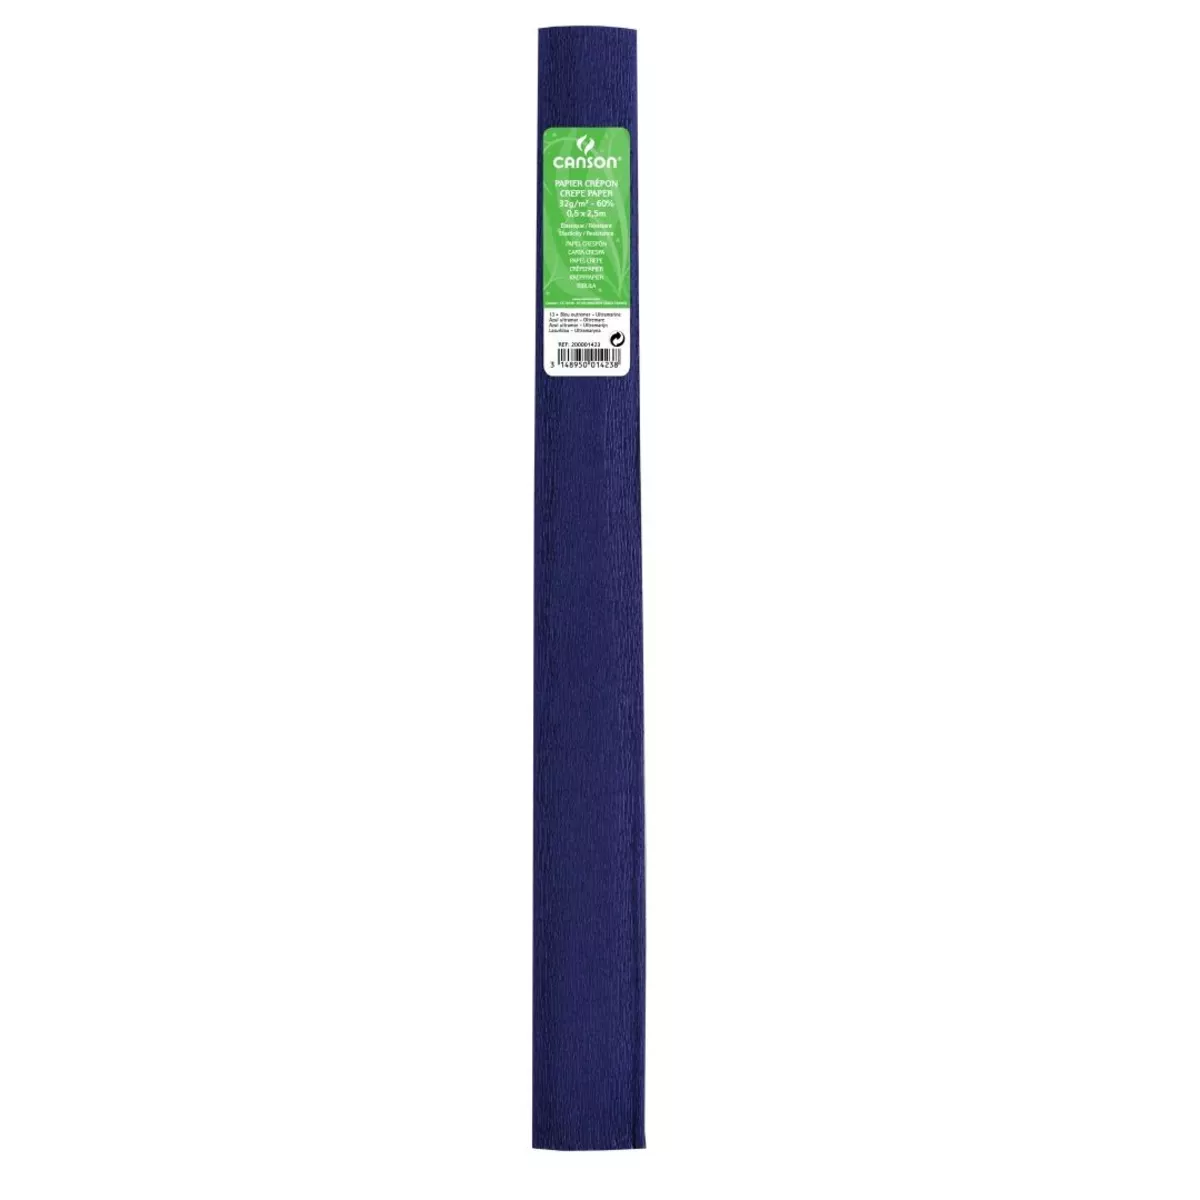 Canson Standard Crepe Paper - Navy Blue (pc)